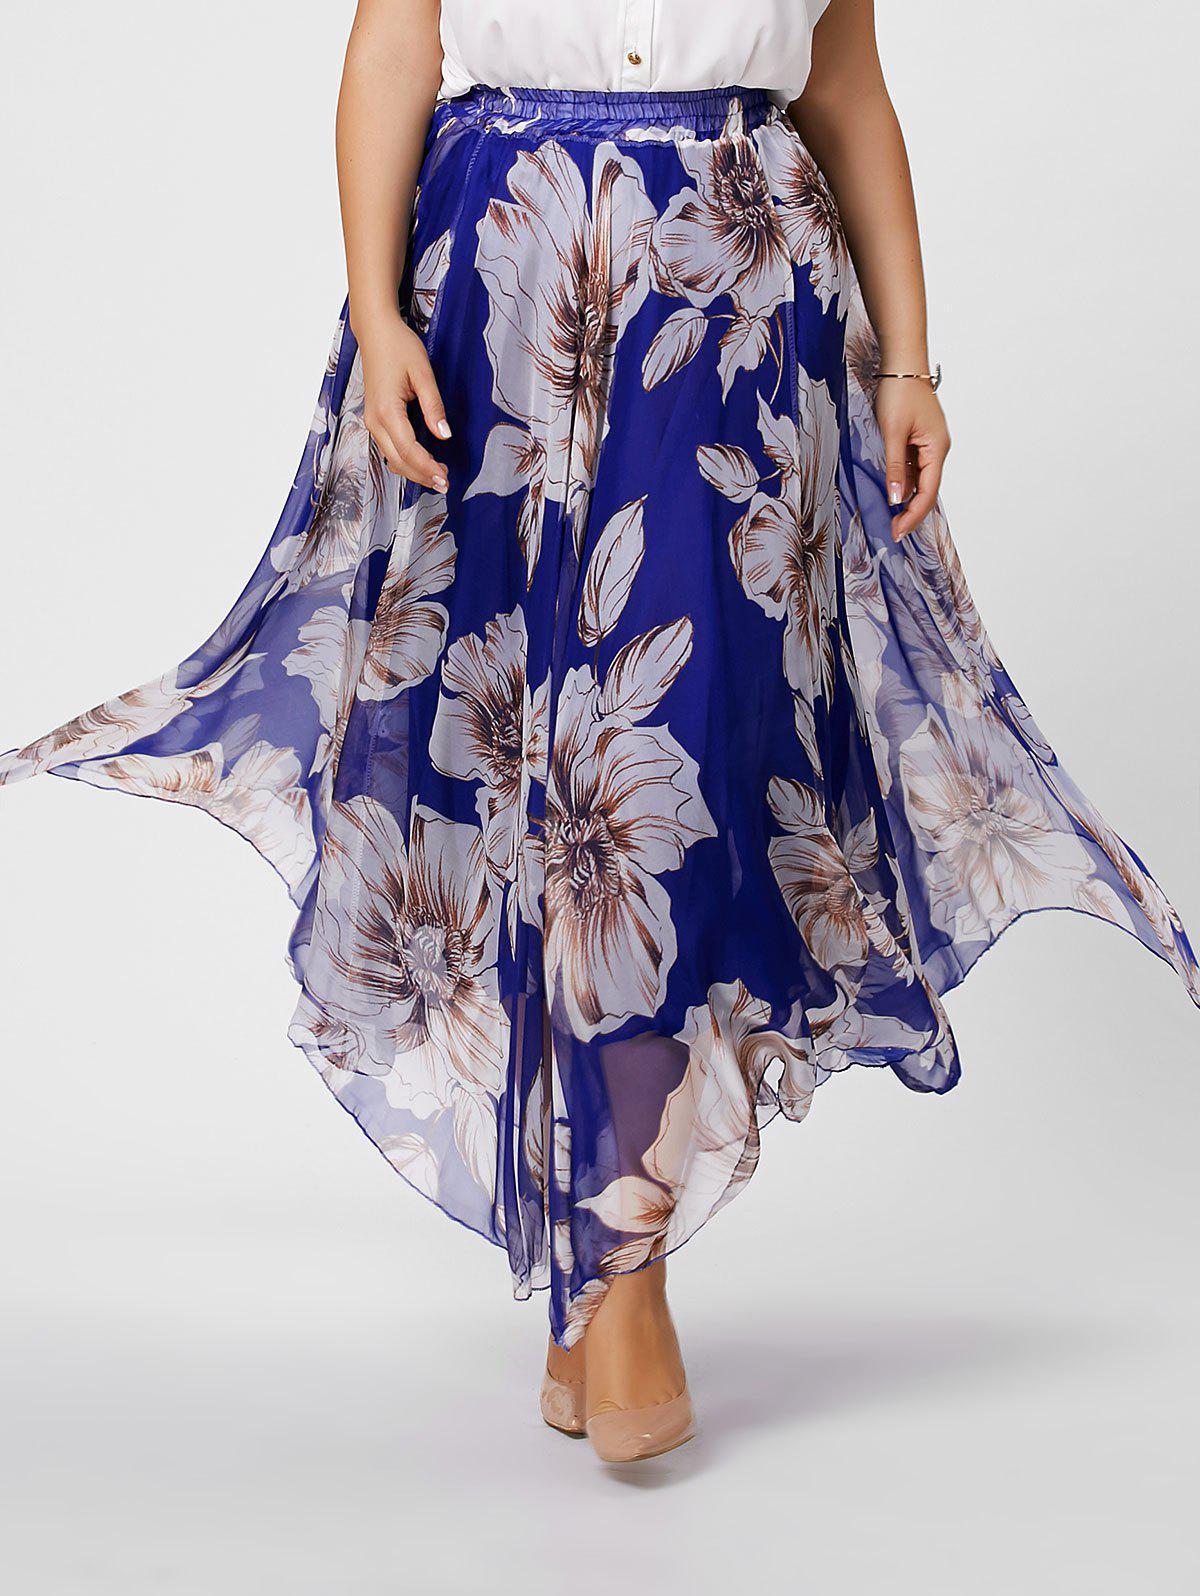 Elastic Waist Plus Size Floral Maxi SkirtWOMEN<br><br>Size: 3XL; Color: BLUE; Material: Polyester; Length: Floor-Length; Silhouette: A-Line; Pattern Type: Floral; Season: Spring,Summer; Weight: 0.3500kg; Package Contents: 1 x Skirt;